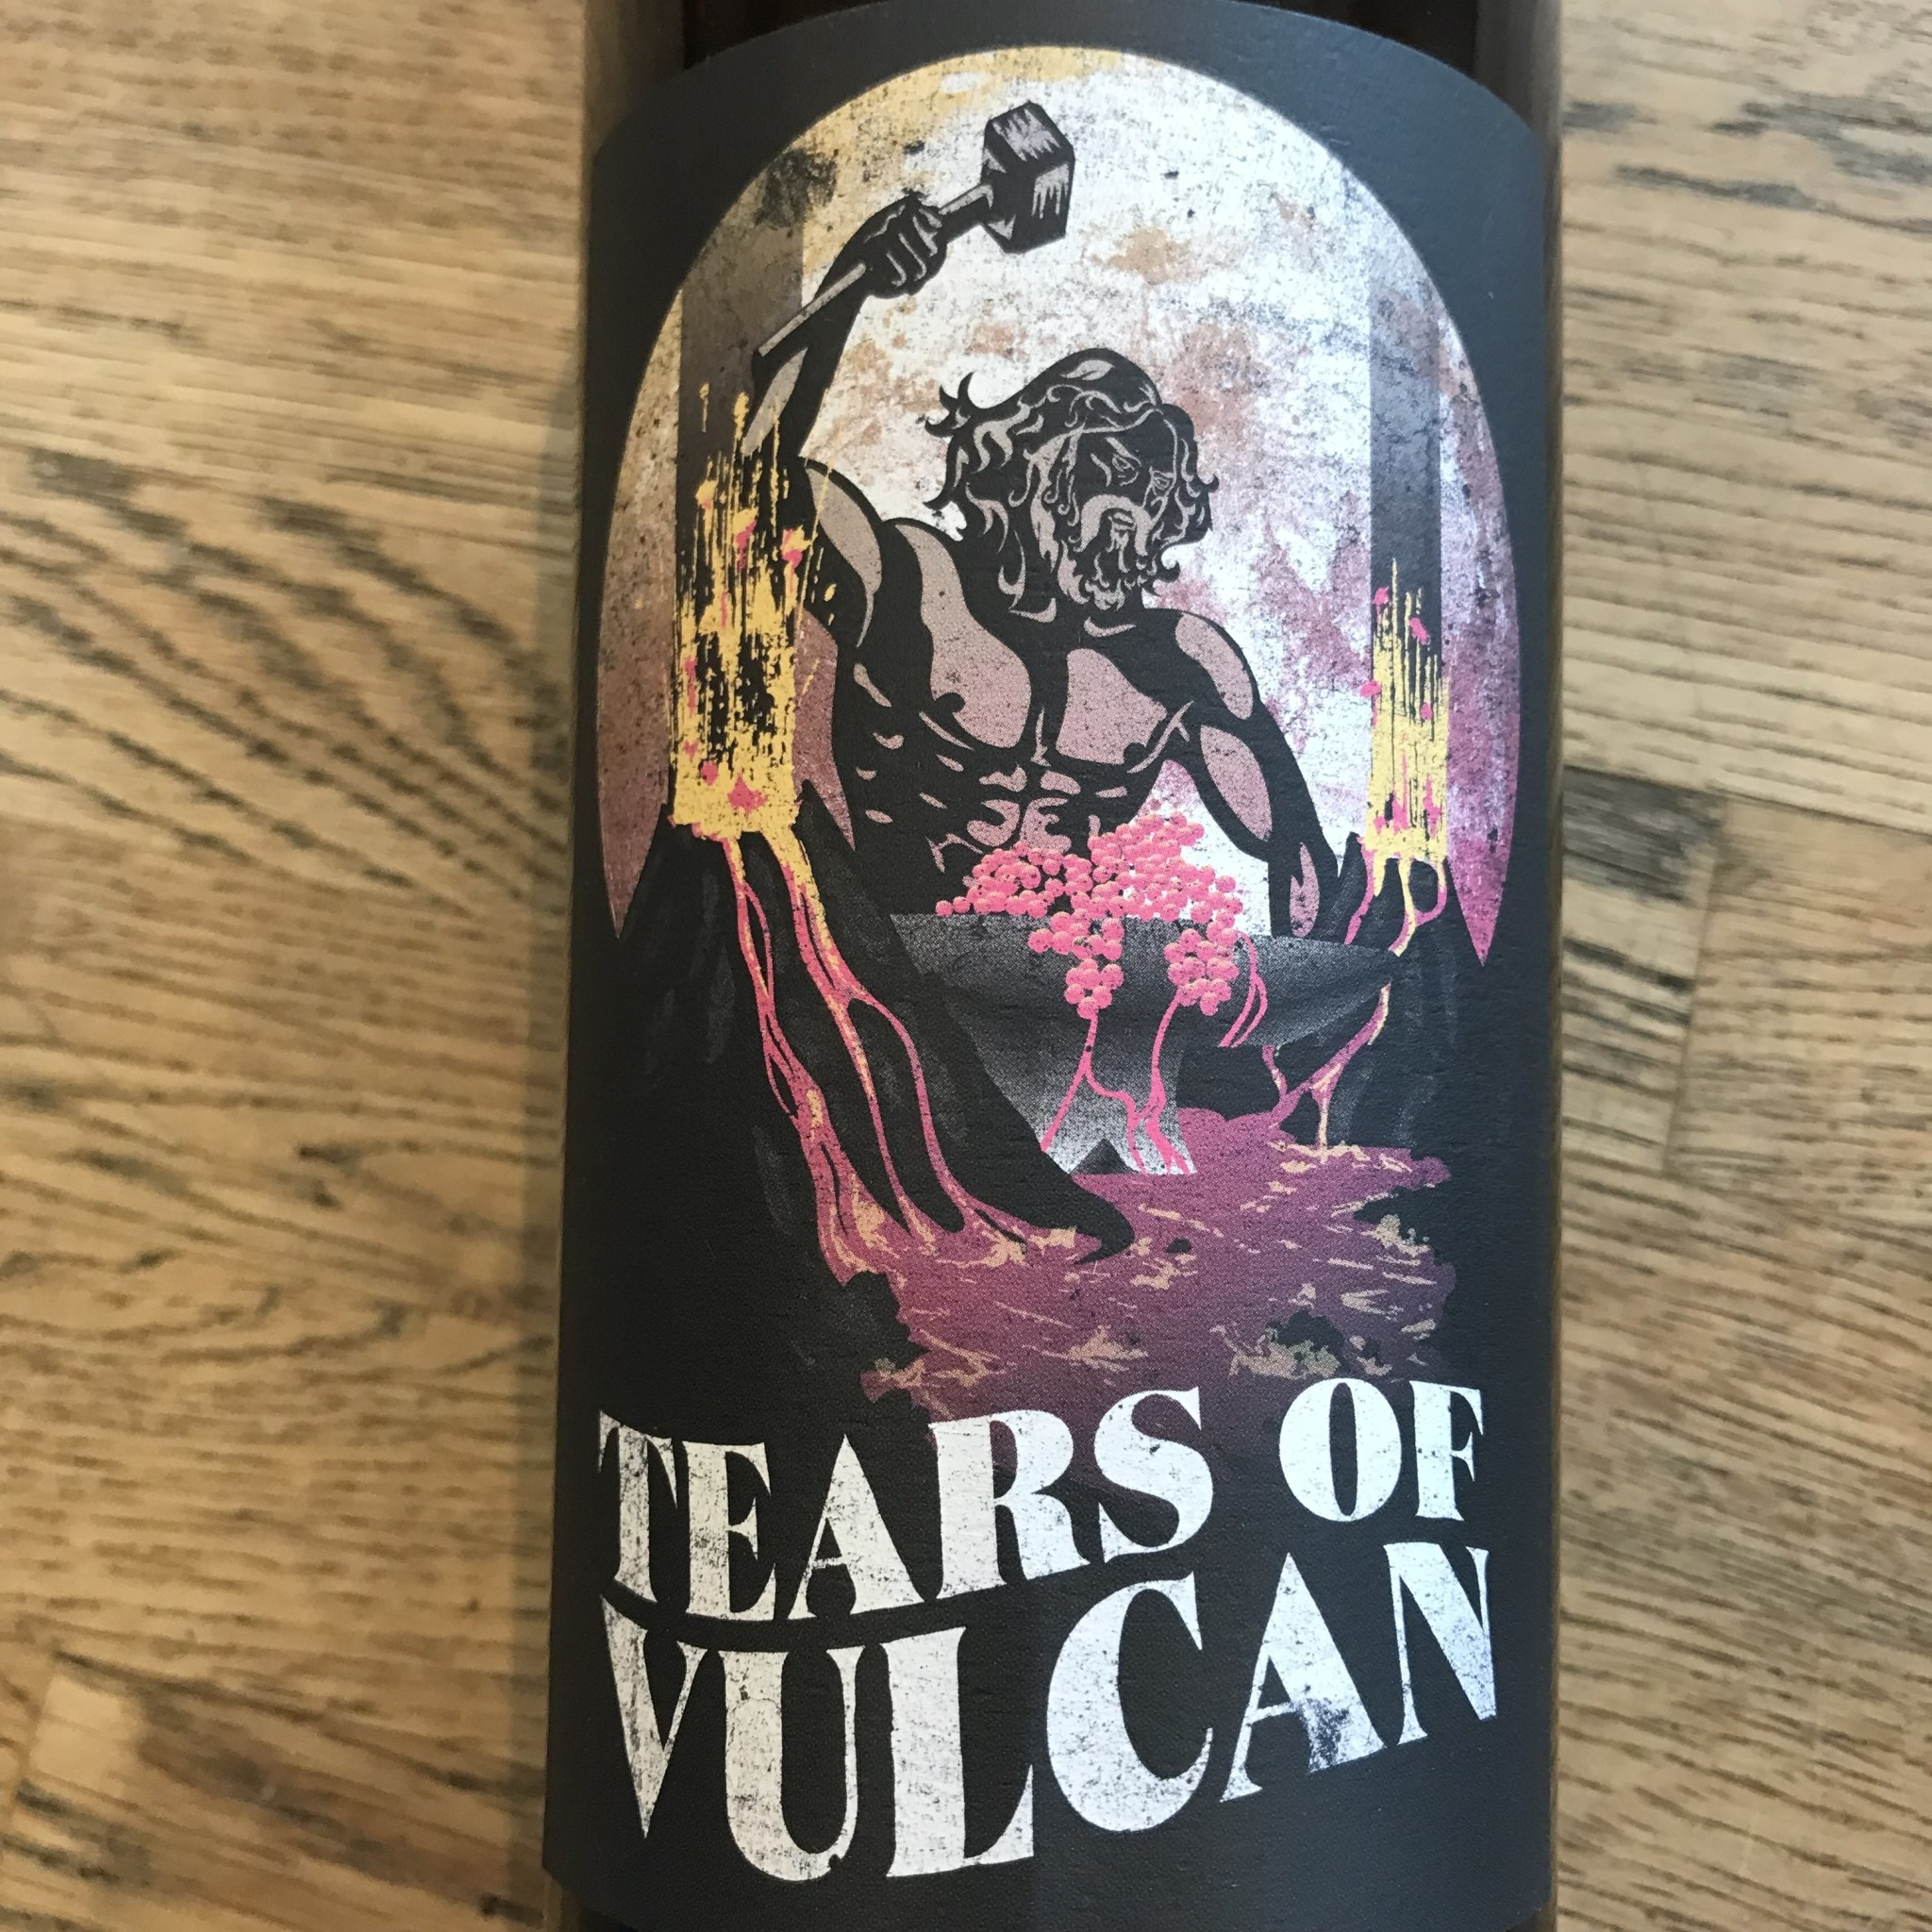 USA 2020 Brianne Day Tears of Vulcan Viogner Pinot Gris Muscat Chehalem Mountains AVA